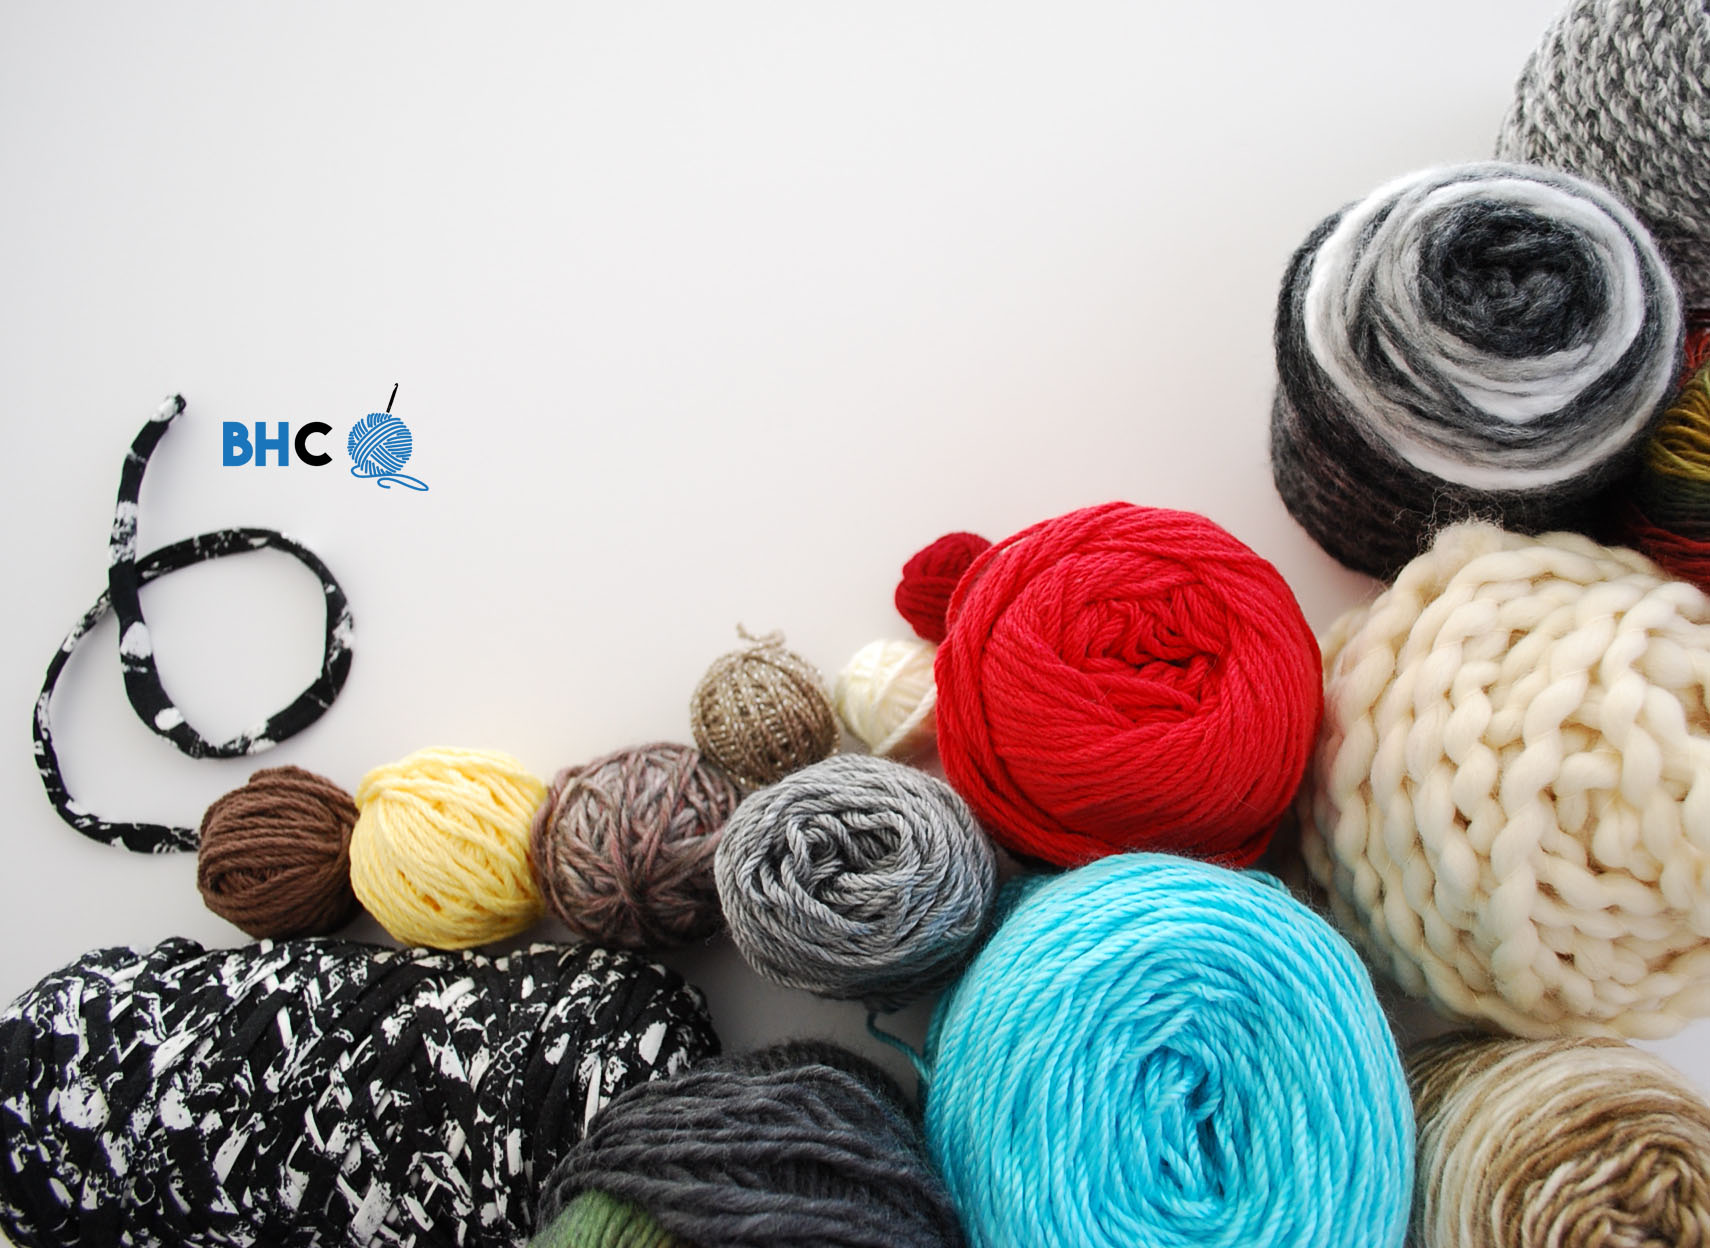 6 Best Yarn to Crochet Afghans that Last - B.hooked Crochet